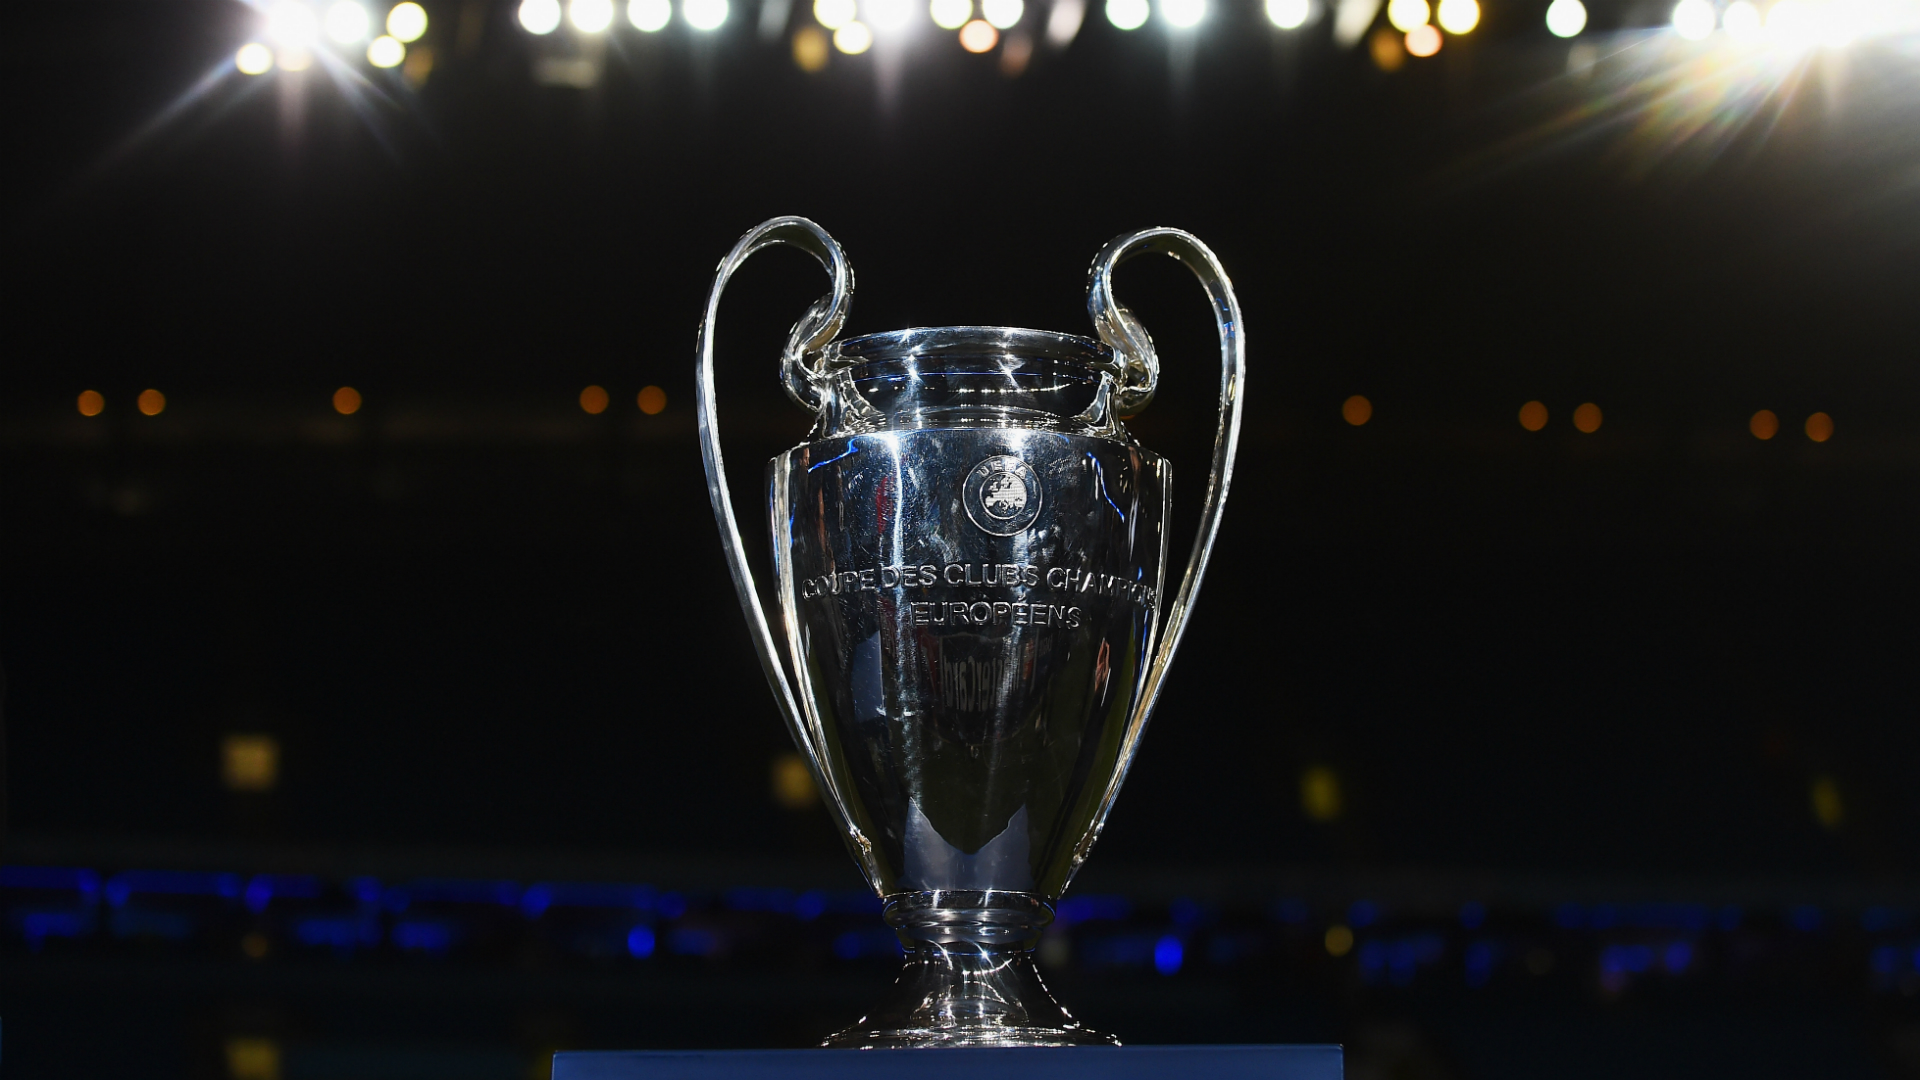 UEFA Champions League: HD UEFA Champions League Trophy 160516